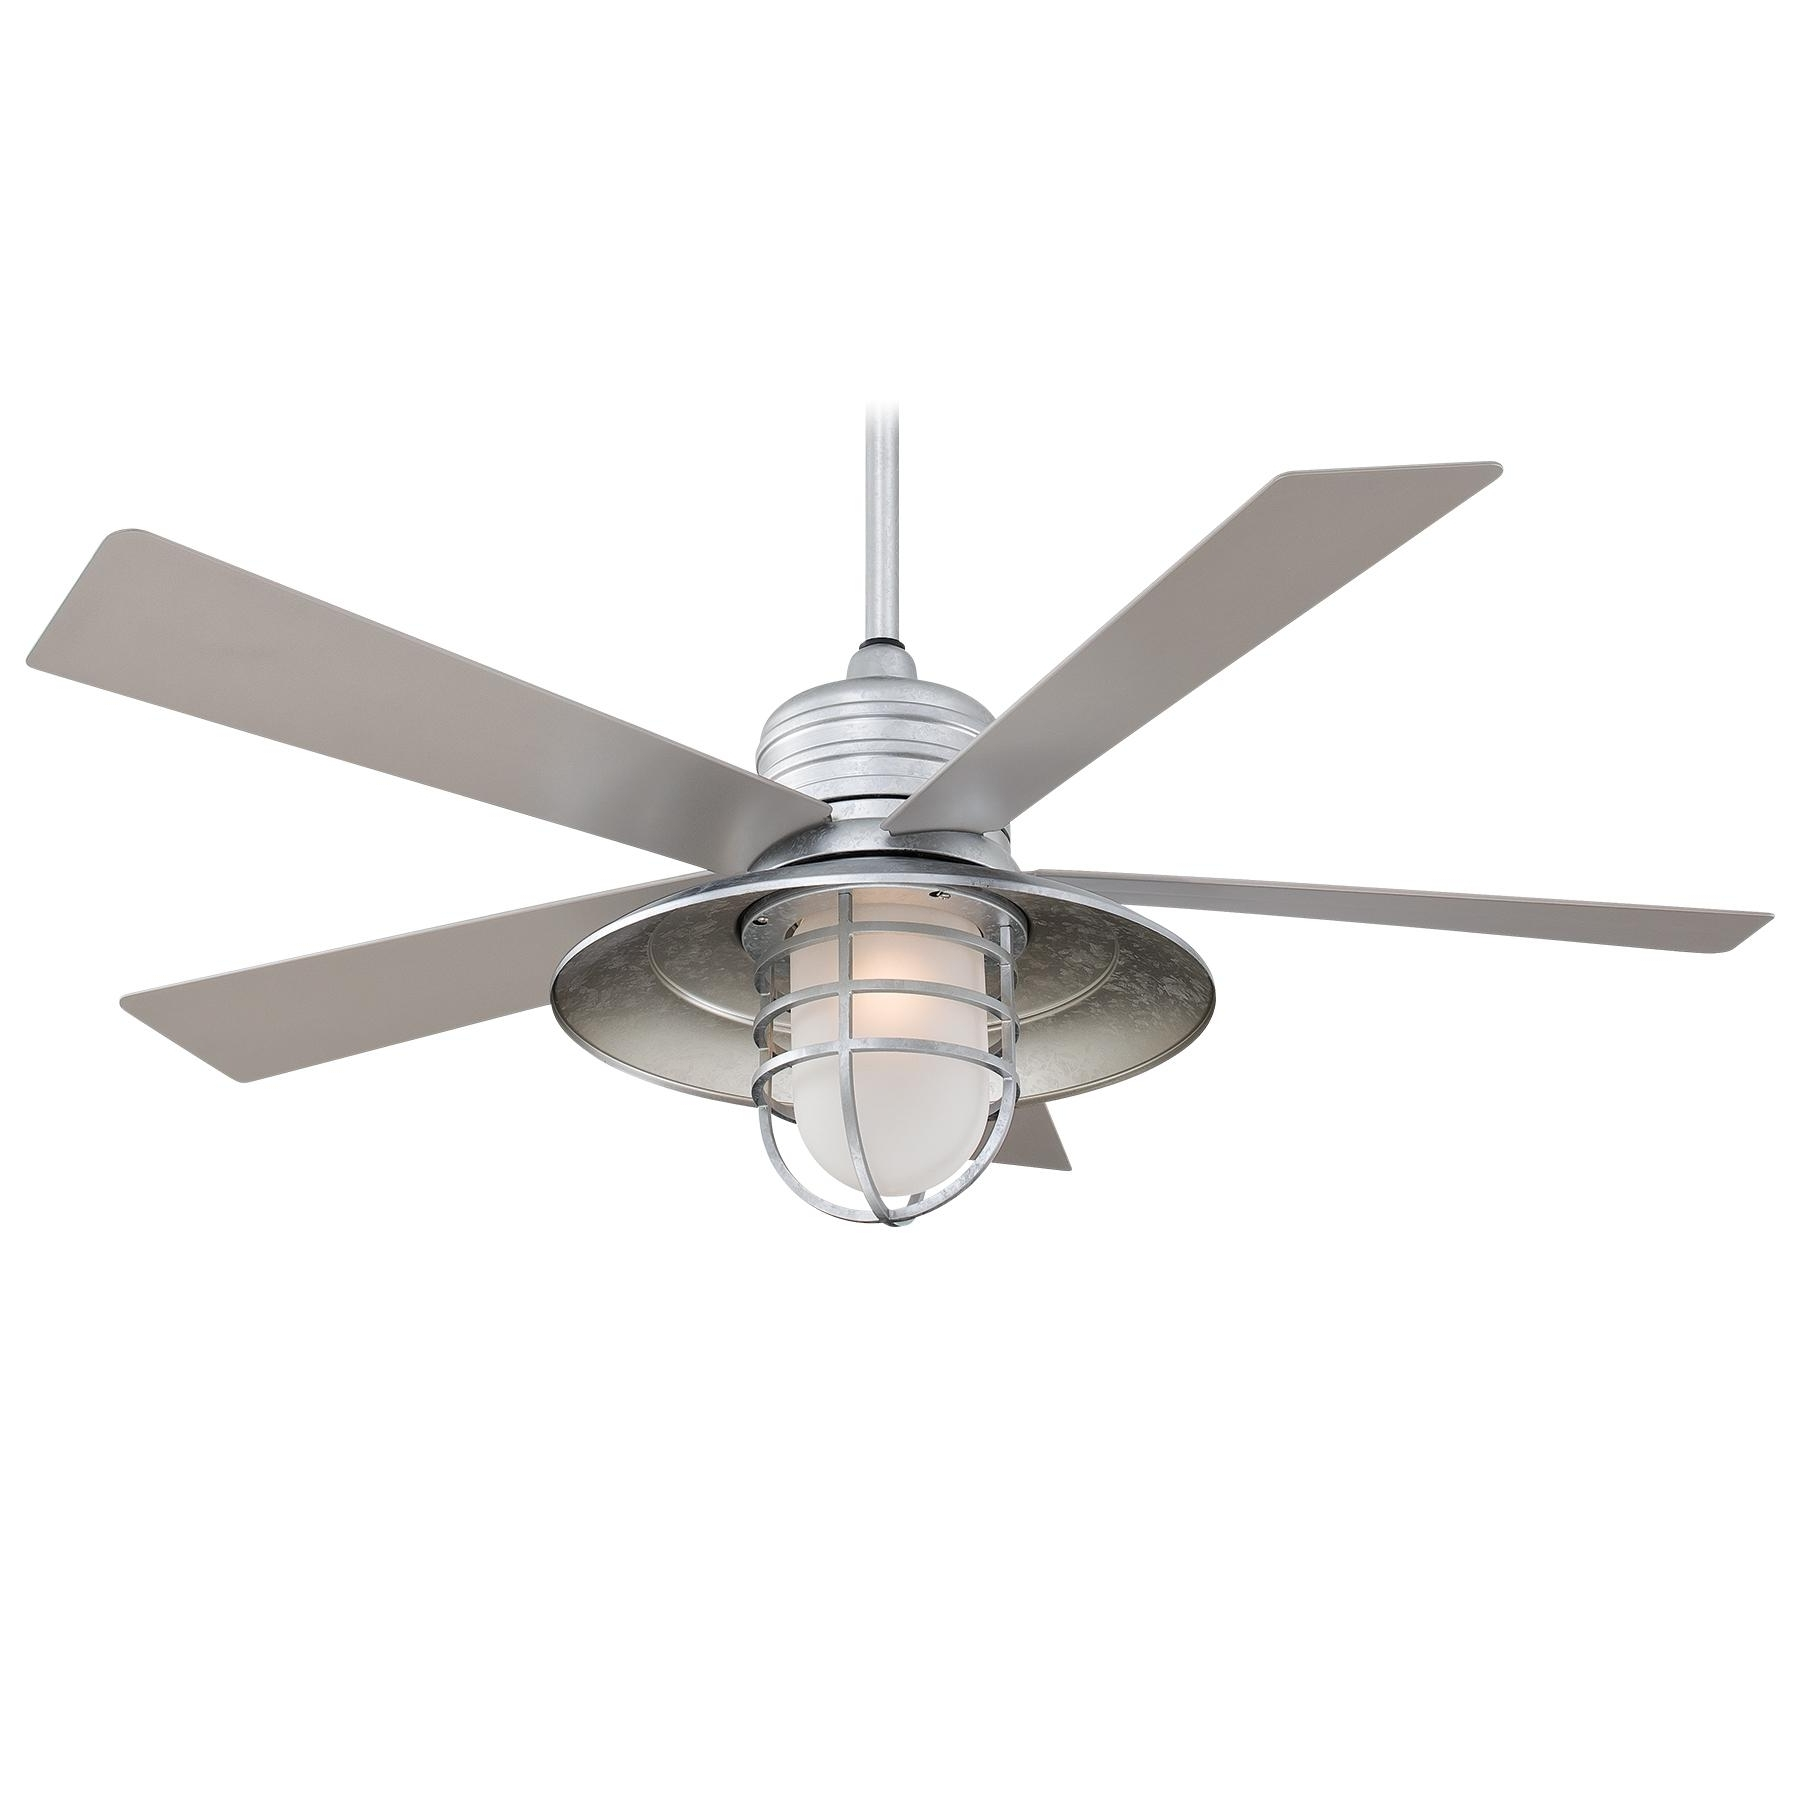 Ceiling: Interesting Kitchen Ceiling Fans With Bright Lights Intended For Popular Outdoor Ceiling Fans With Bright Lights (View 4 of 20)